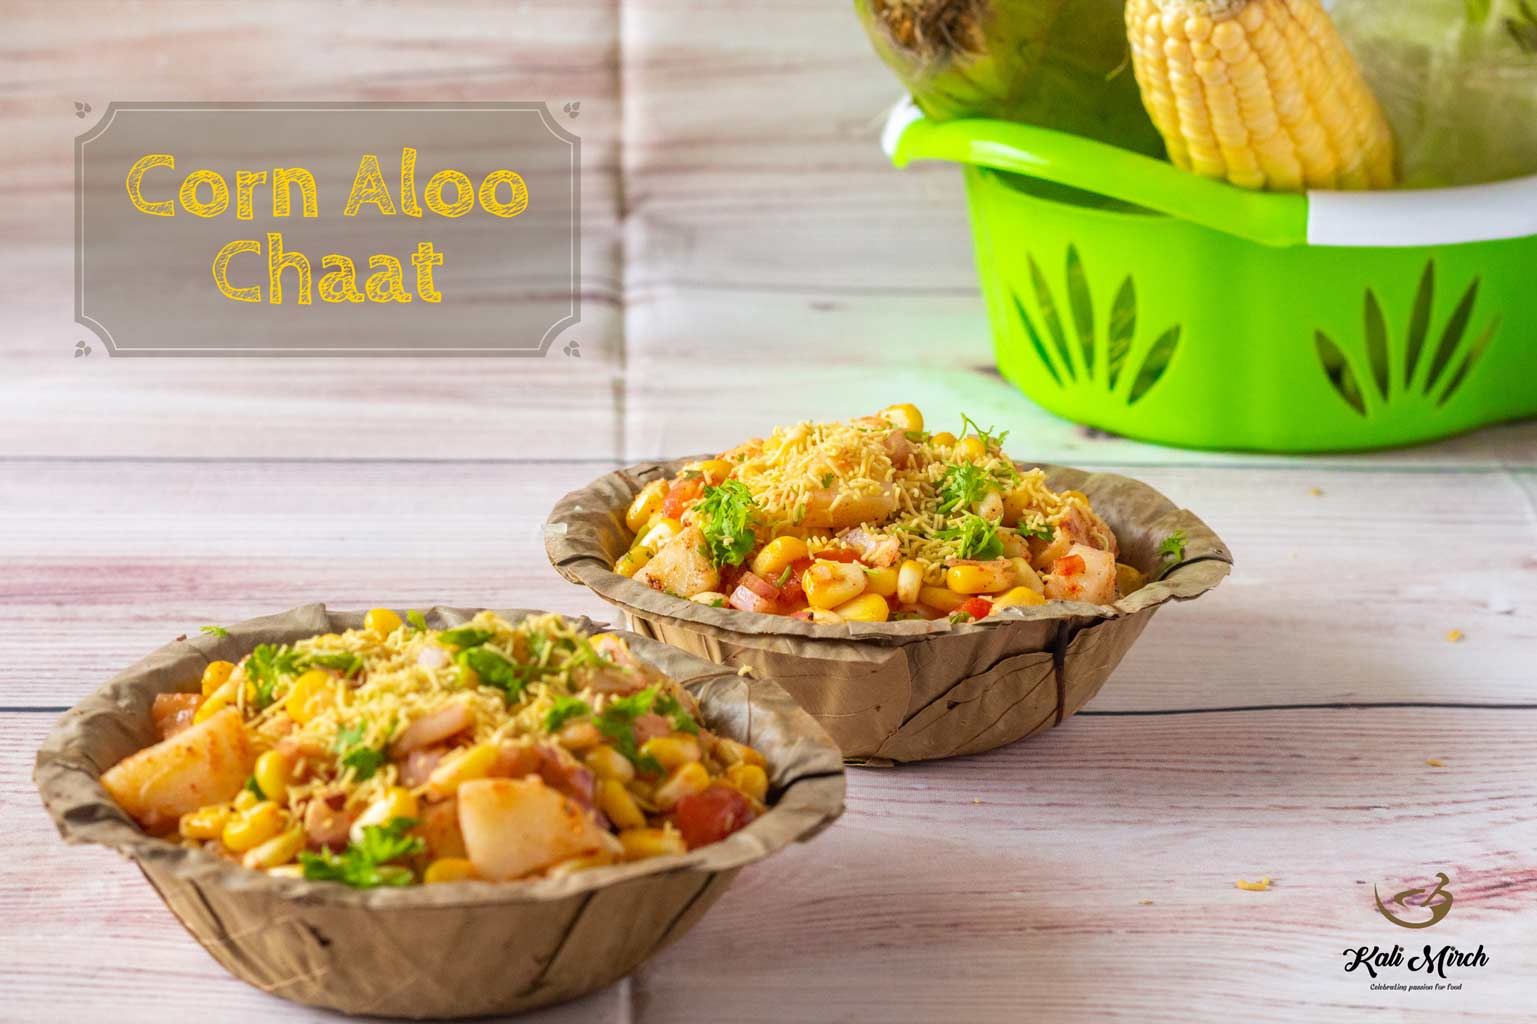 Corn Aloo Chaat